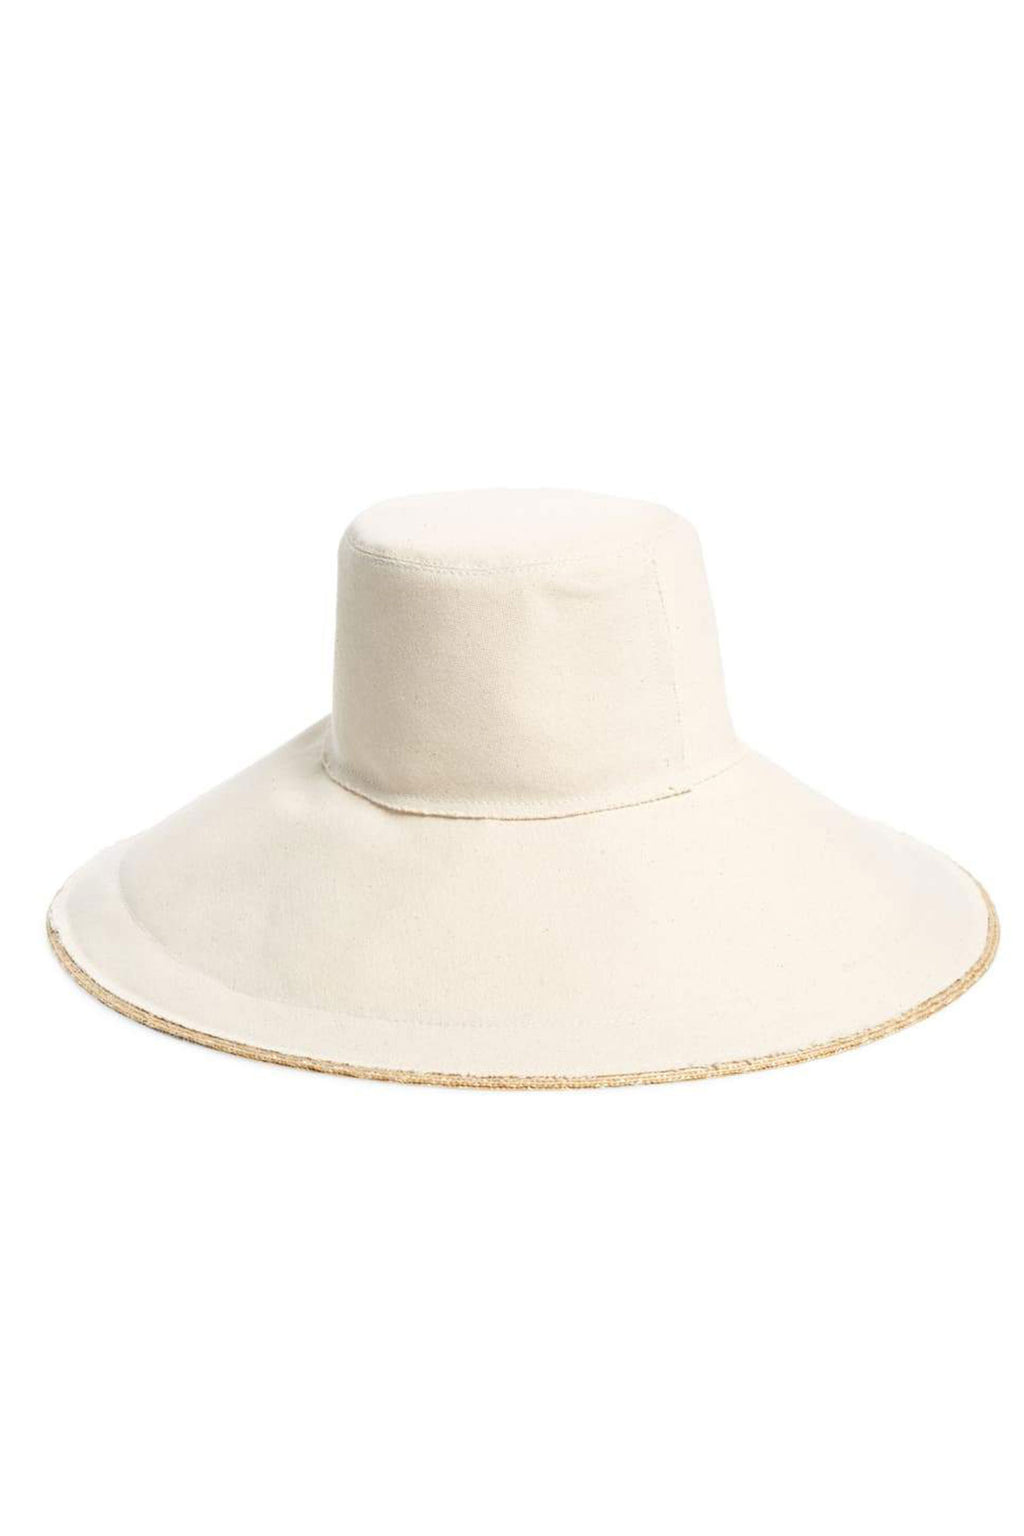 Lola Ehlrich Single Take Hat In Natural